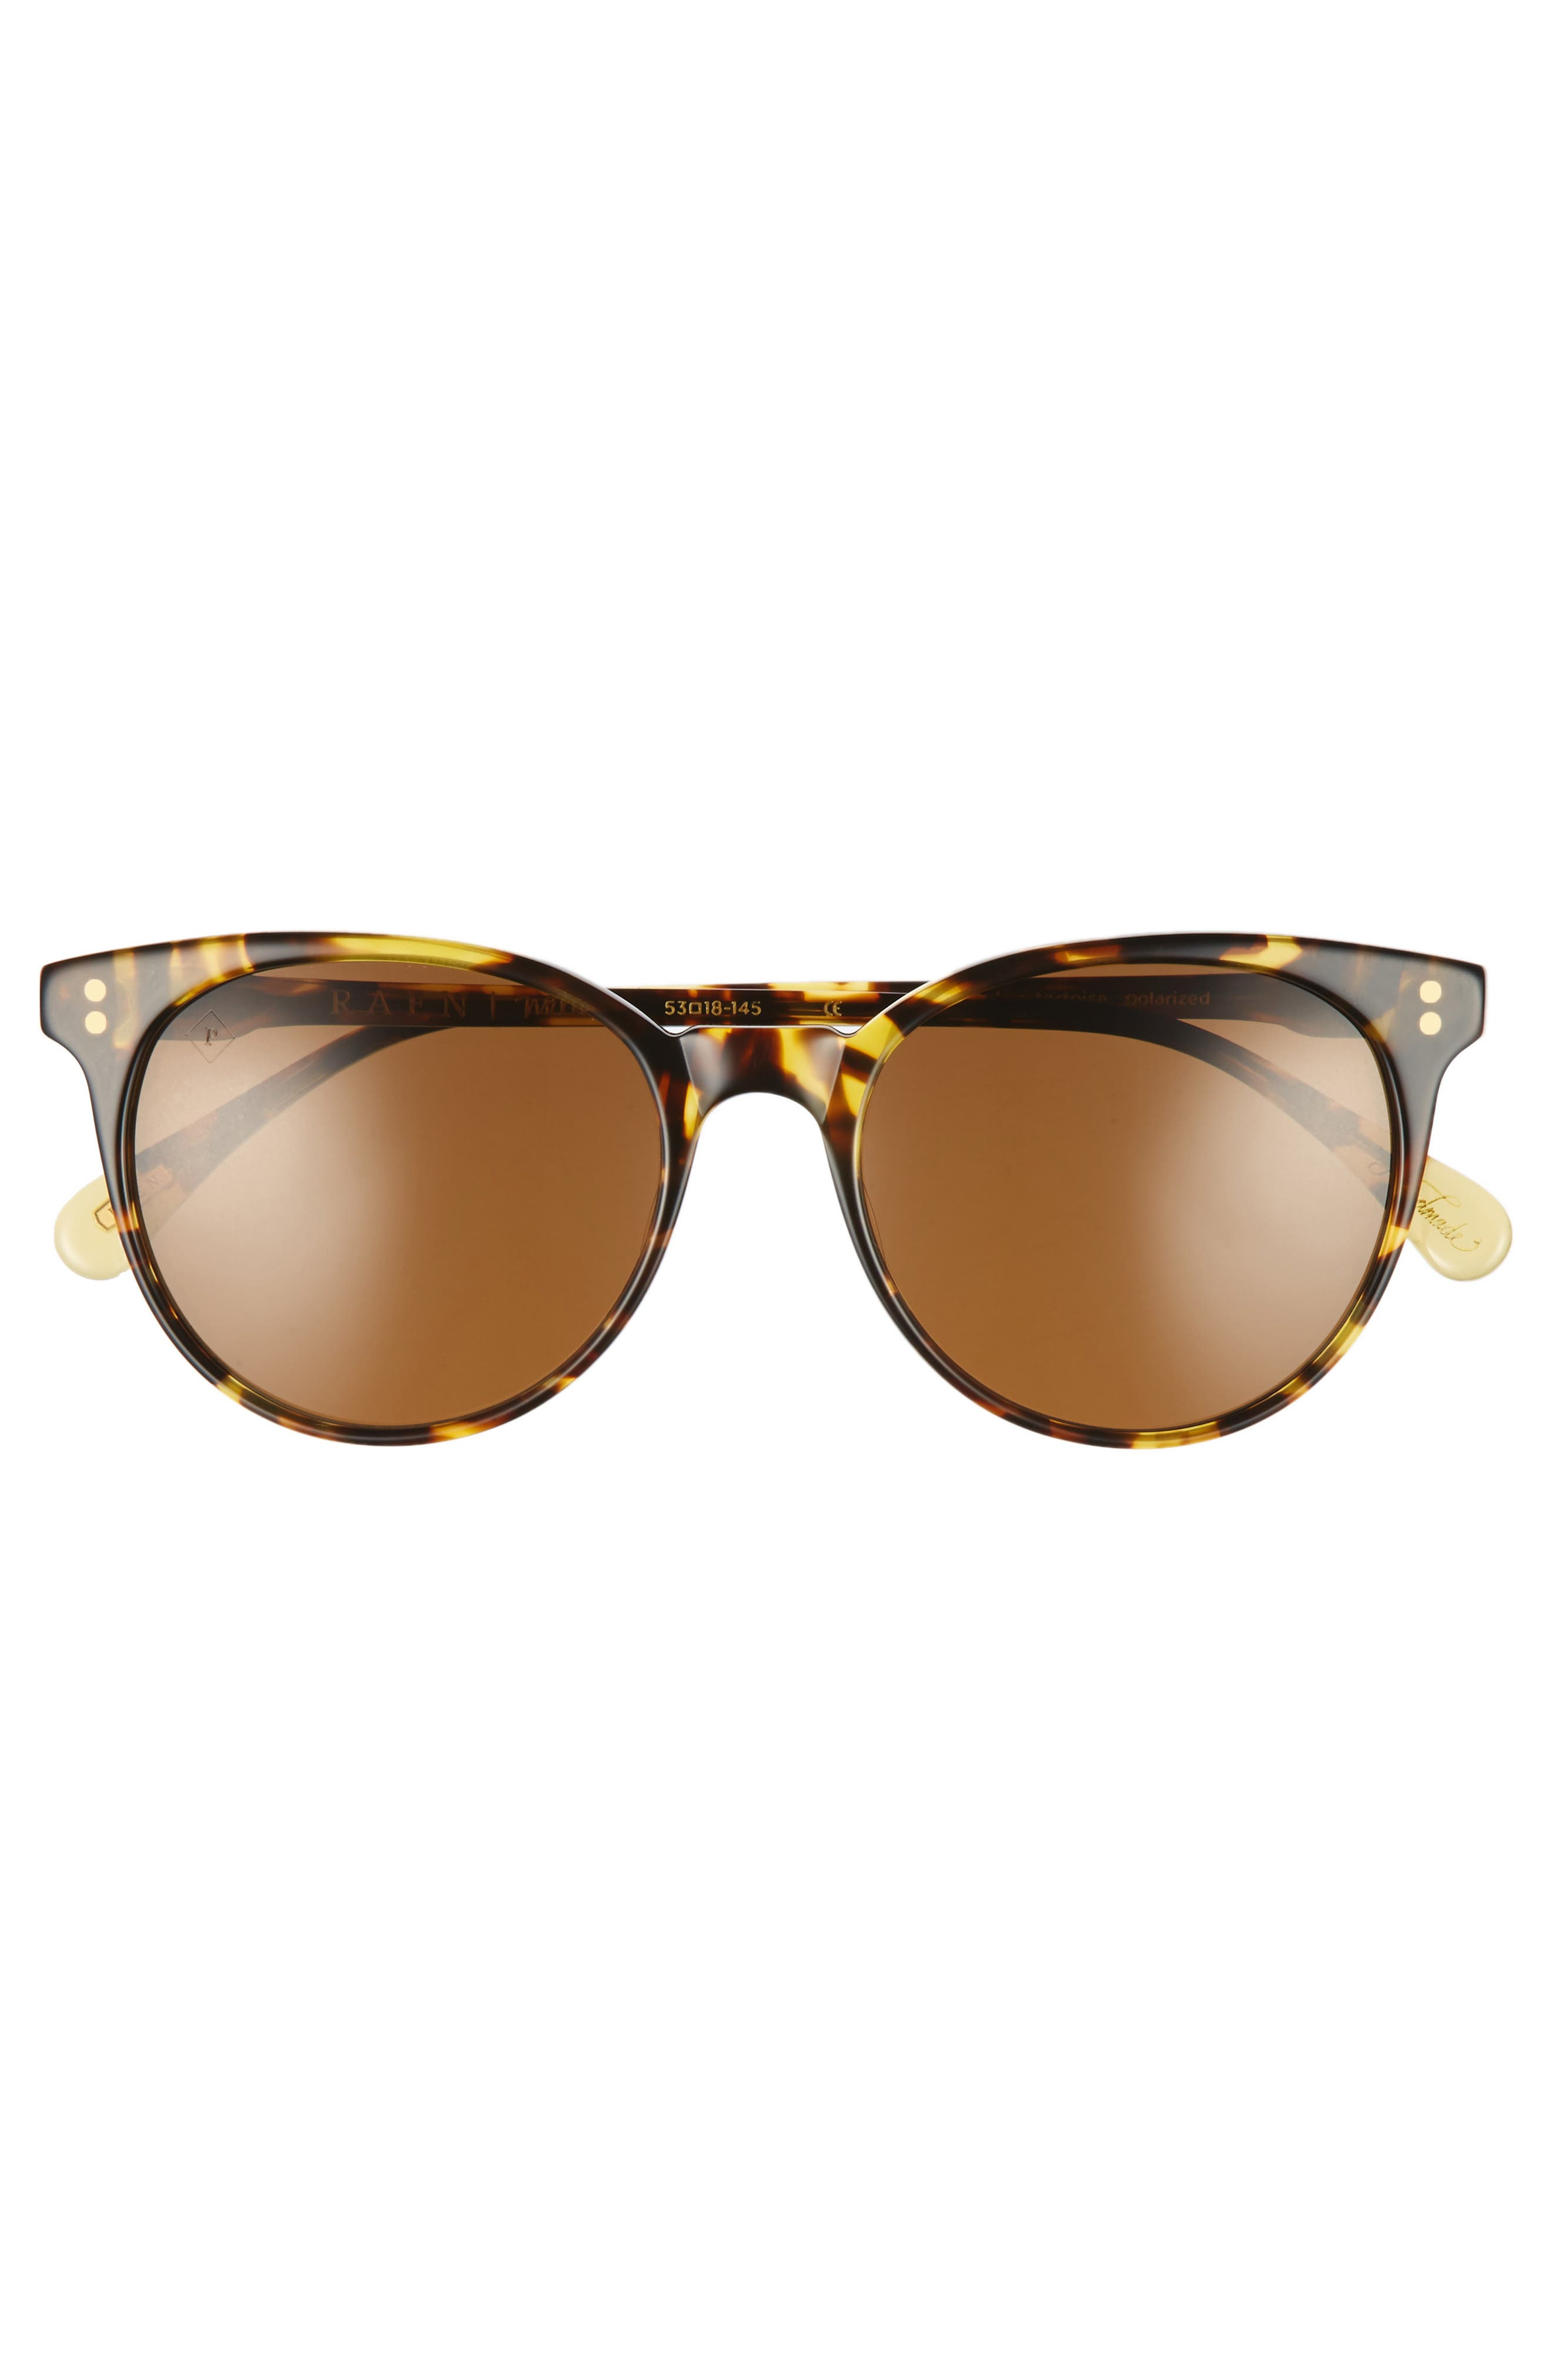 Norie 53mm Sunglasses,                             Alternate thumbnail 2, color,                             205